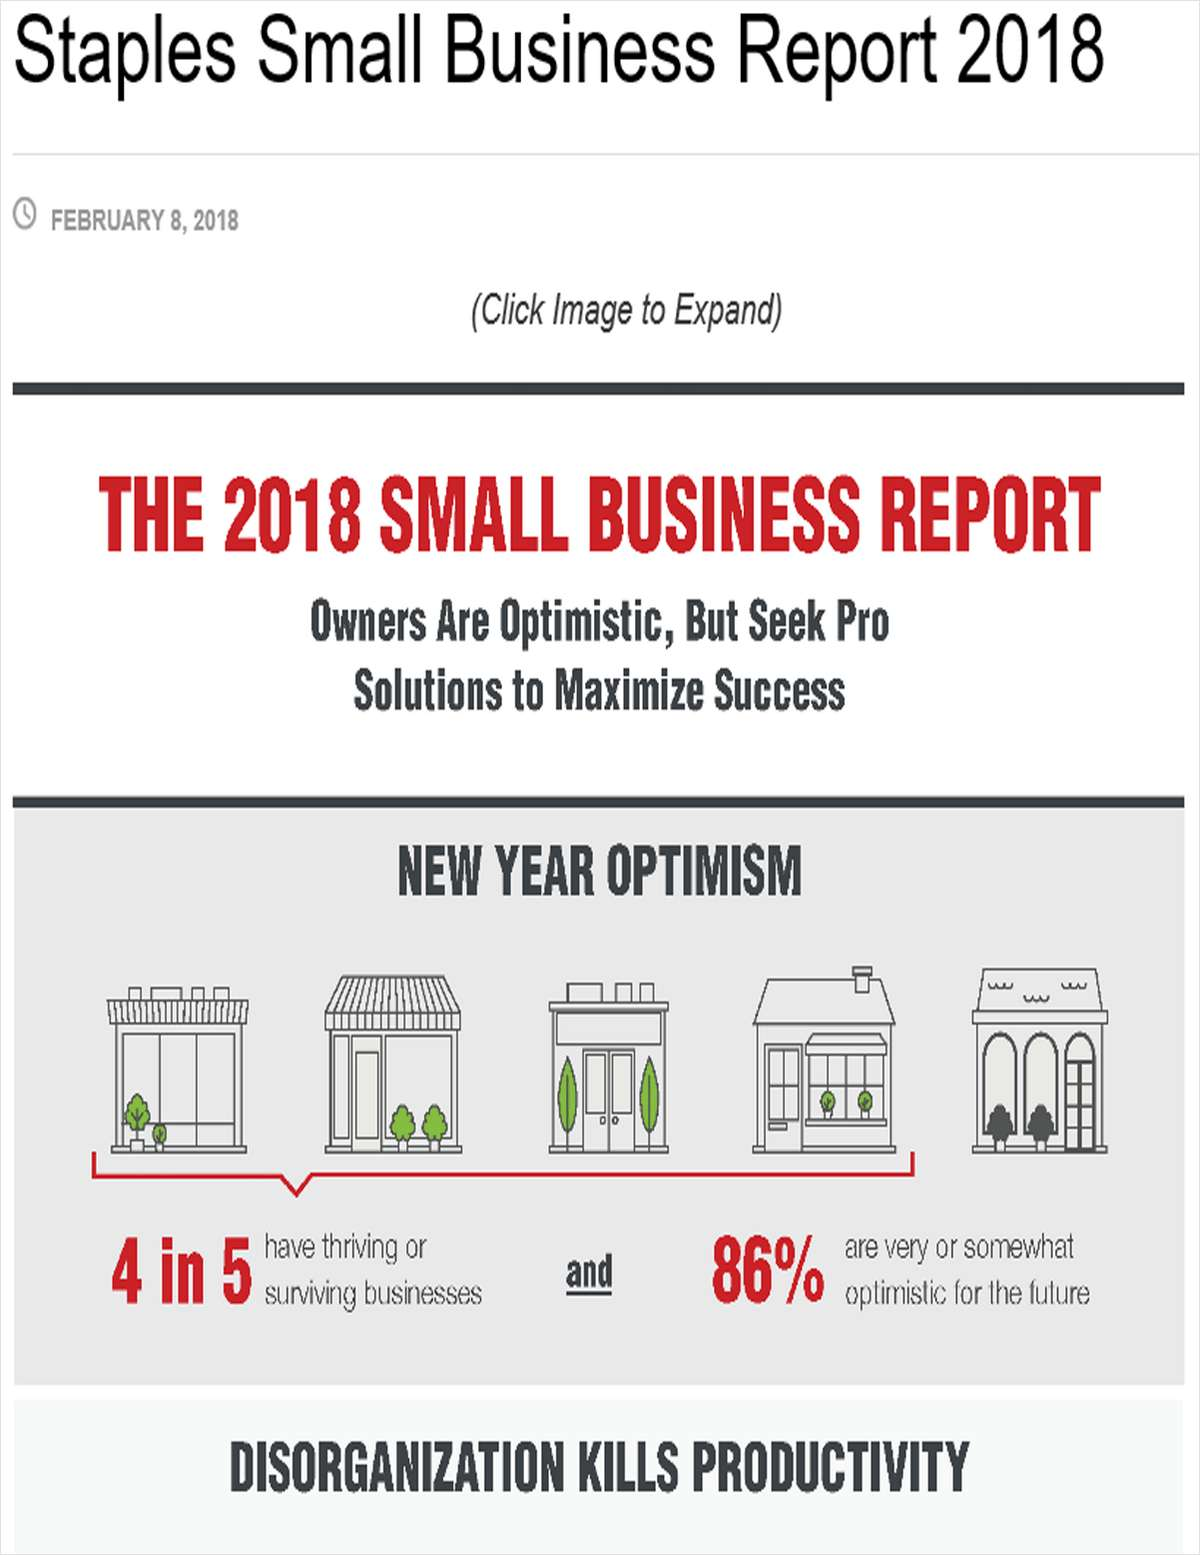 Staples 2018 Small Business Report